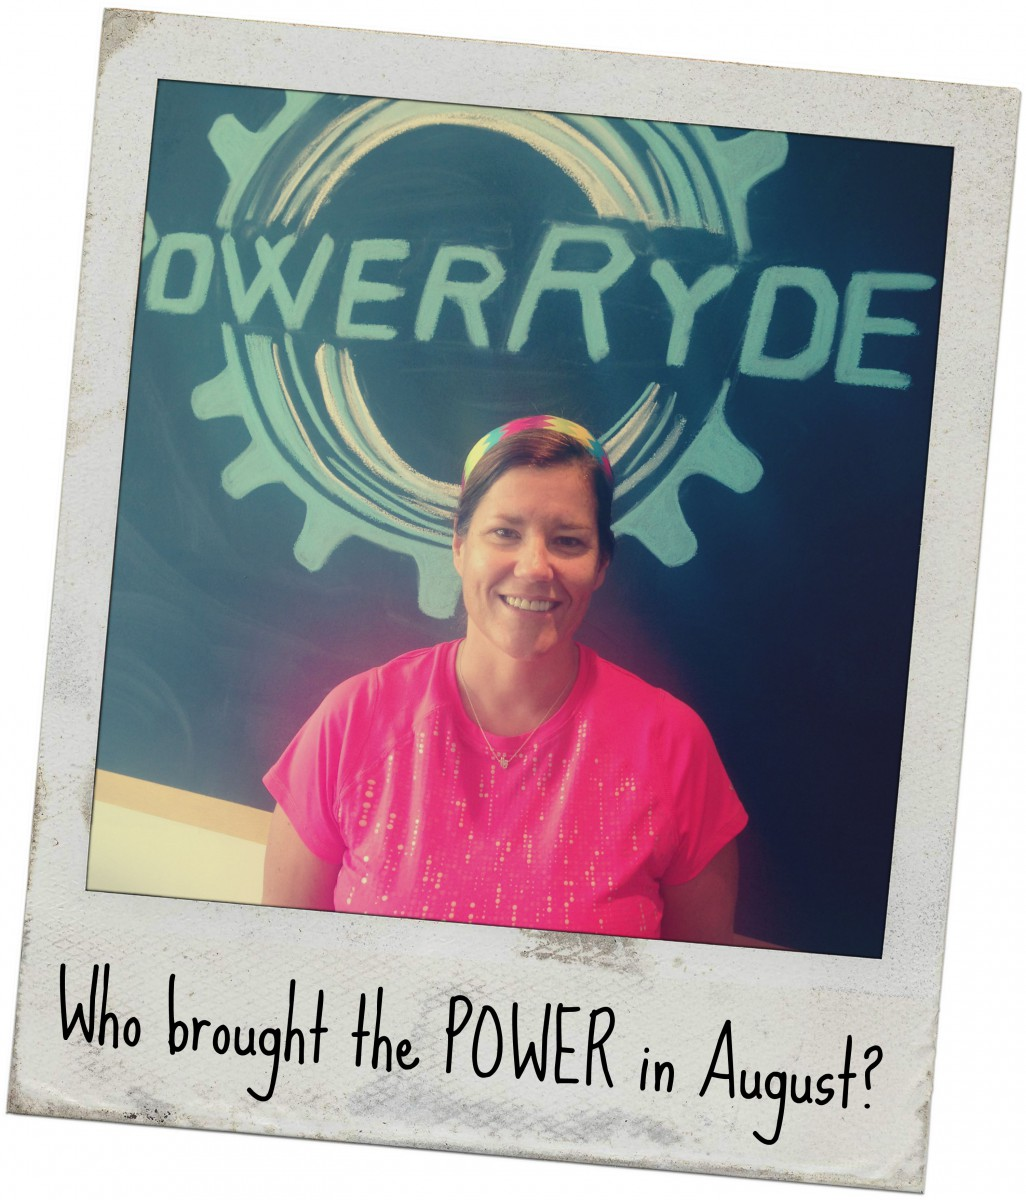 Who brought the POWER in August?